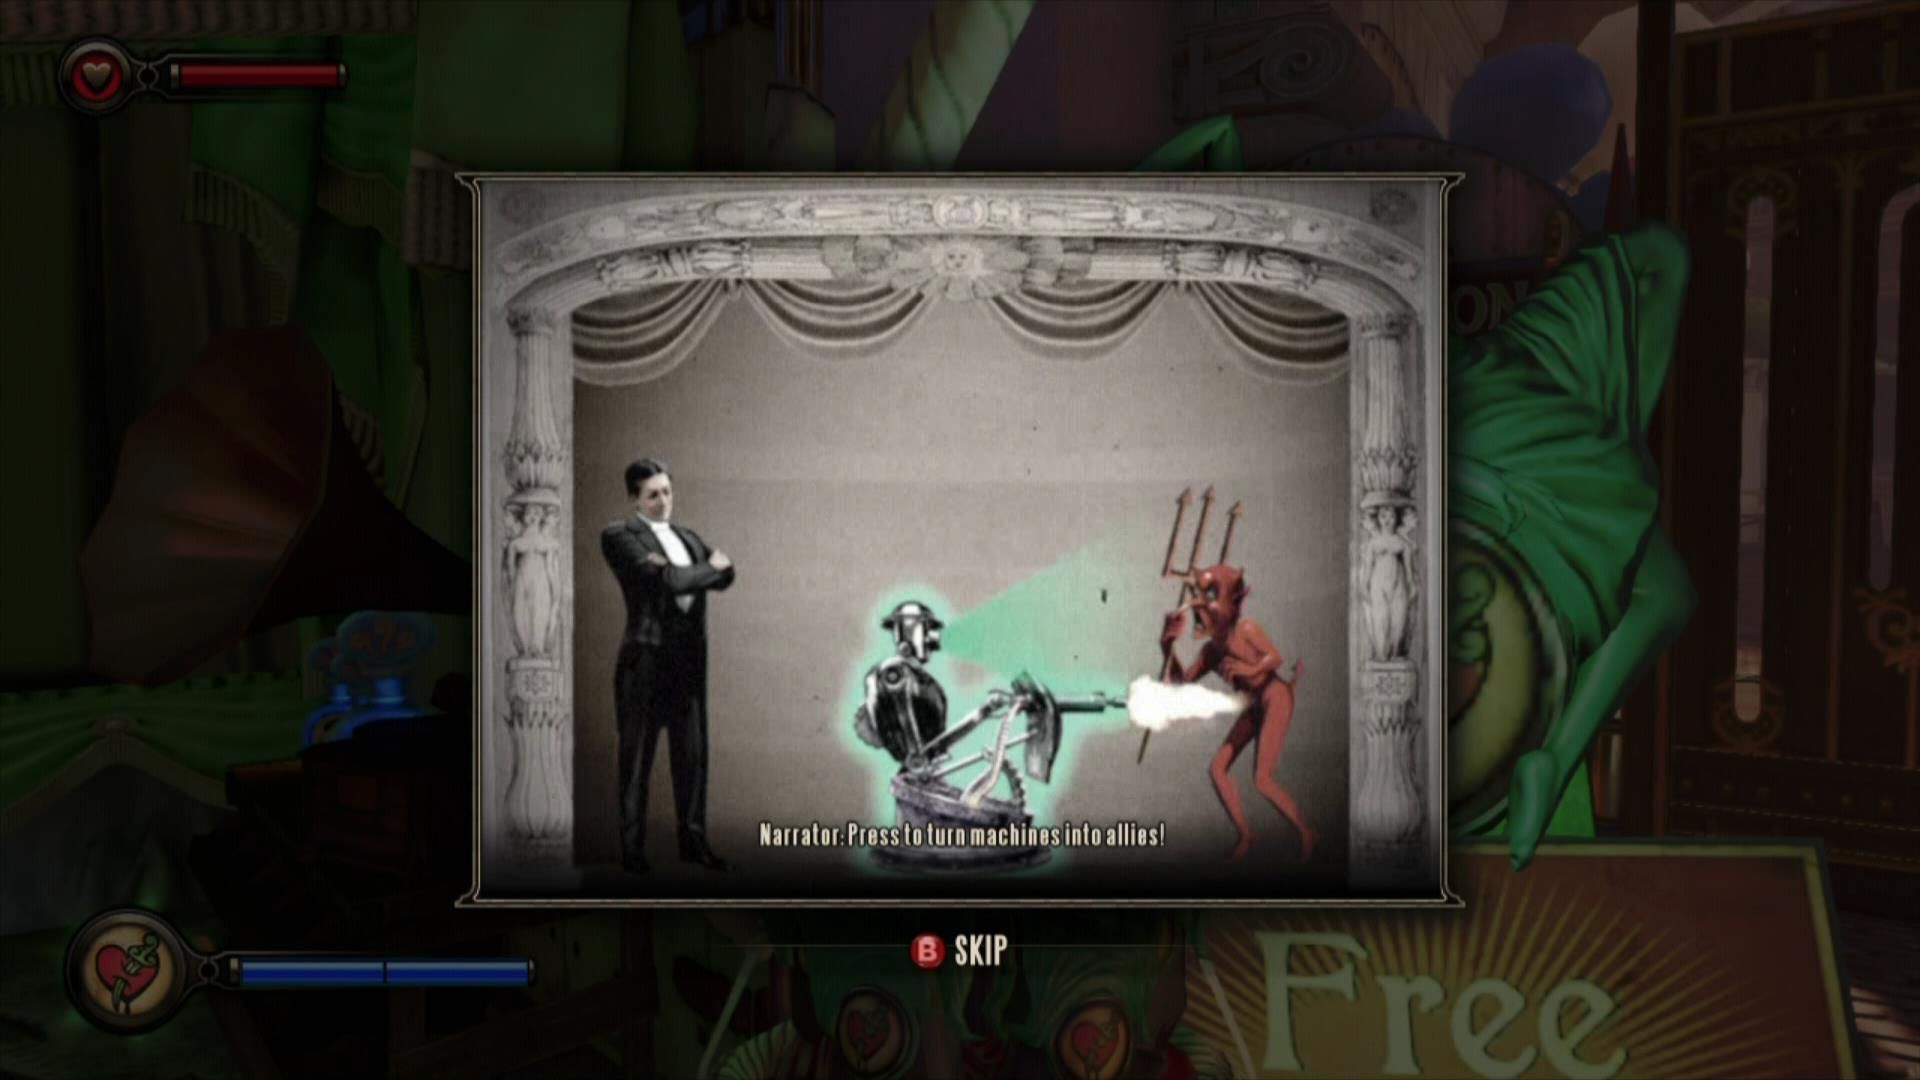 BioShock Infinite Xbox 360 Details about the vigors are explained in short movies.